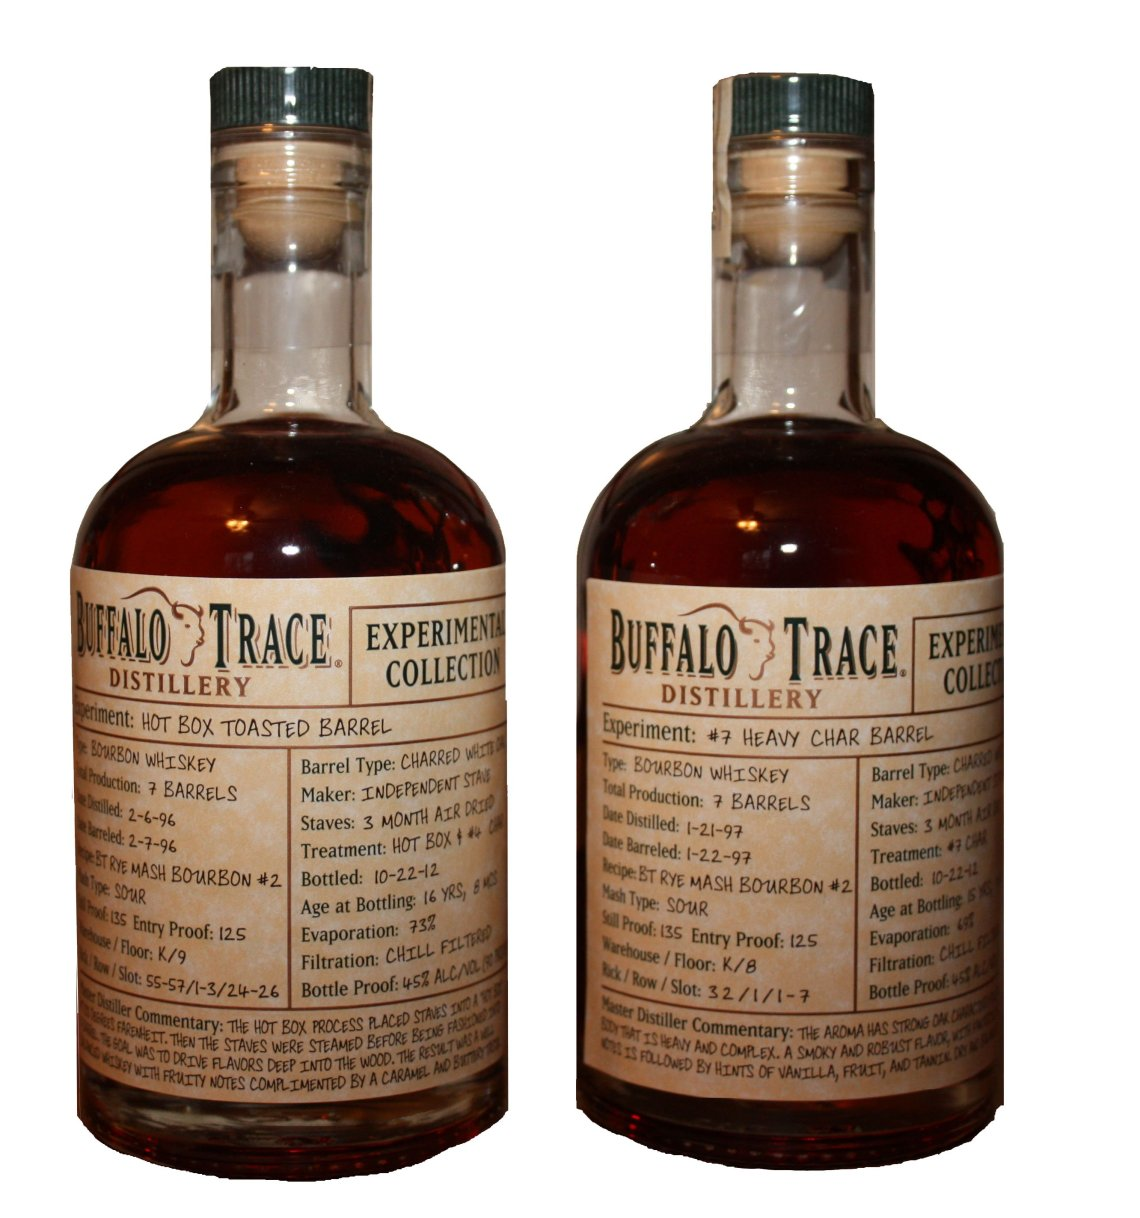 Buffalo Trace Experimental Collection #7 Heavy CharBourbon